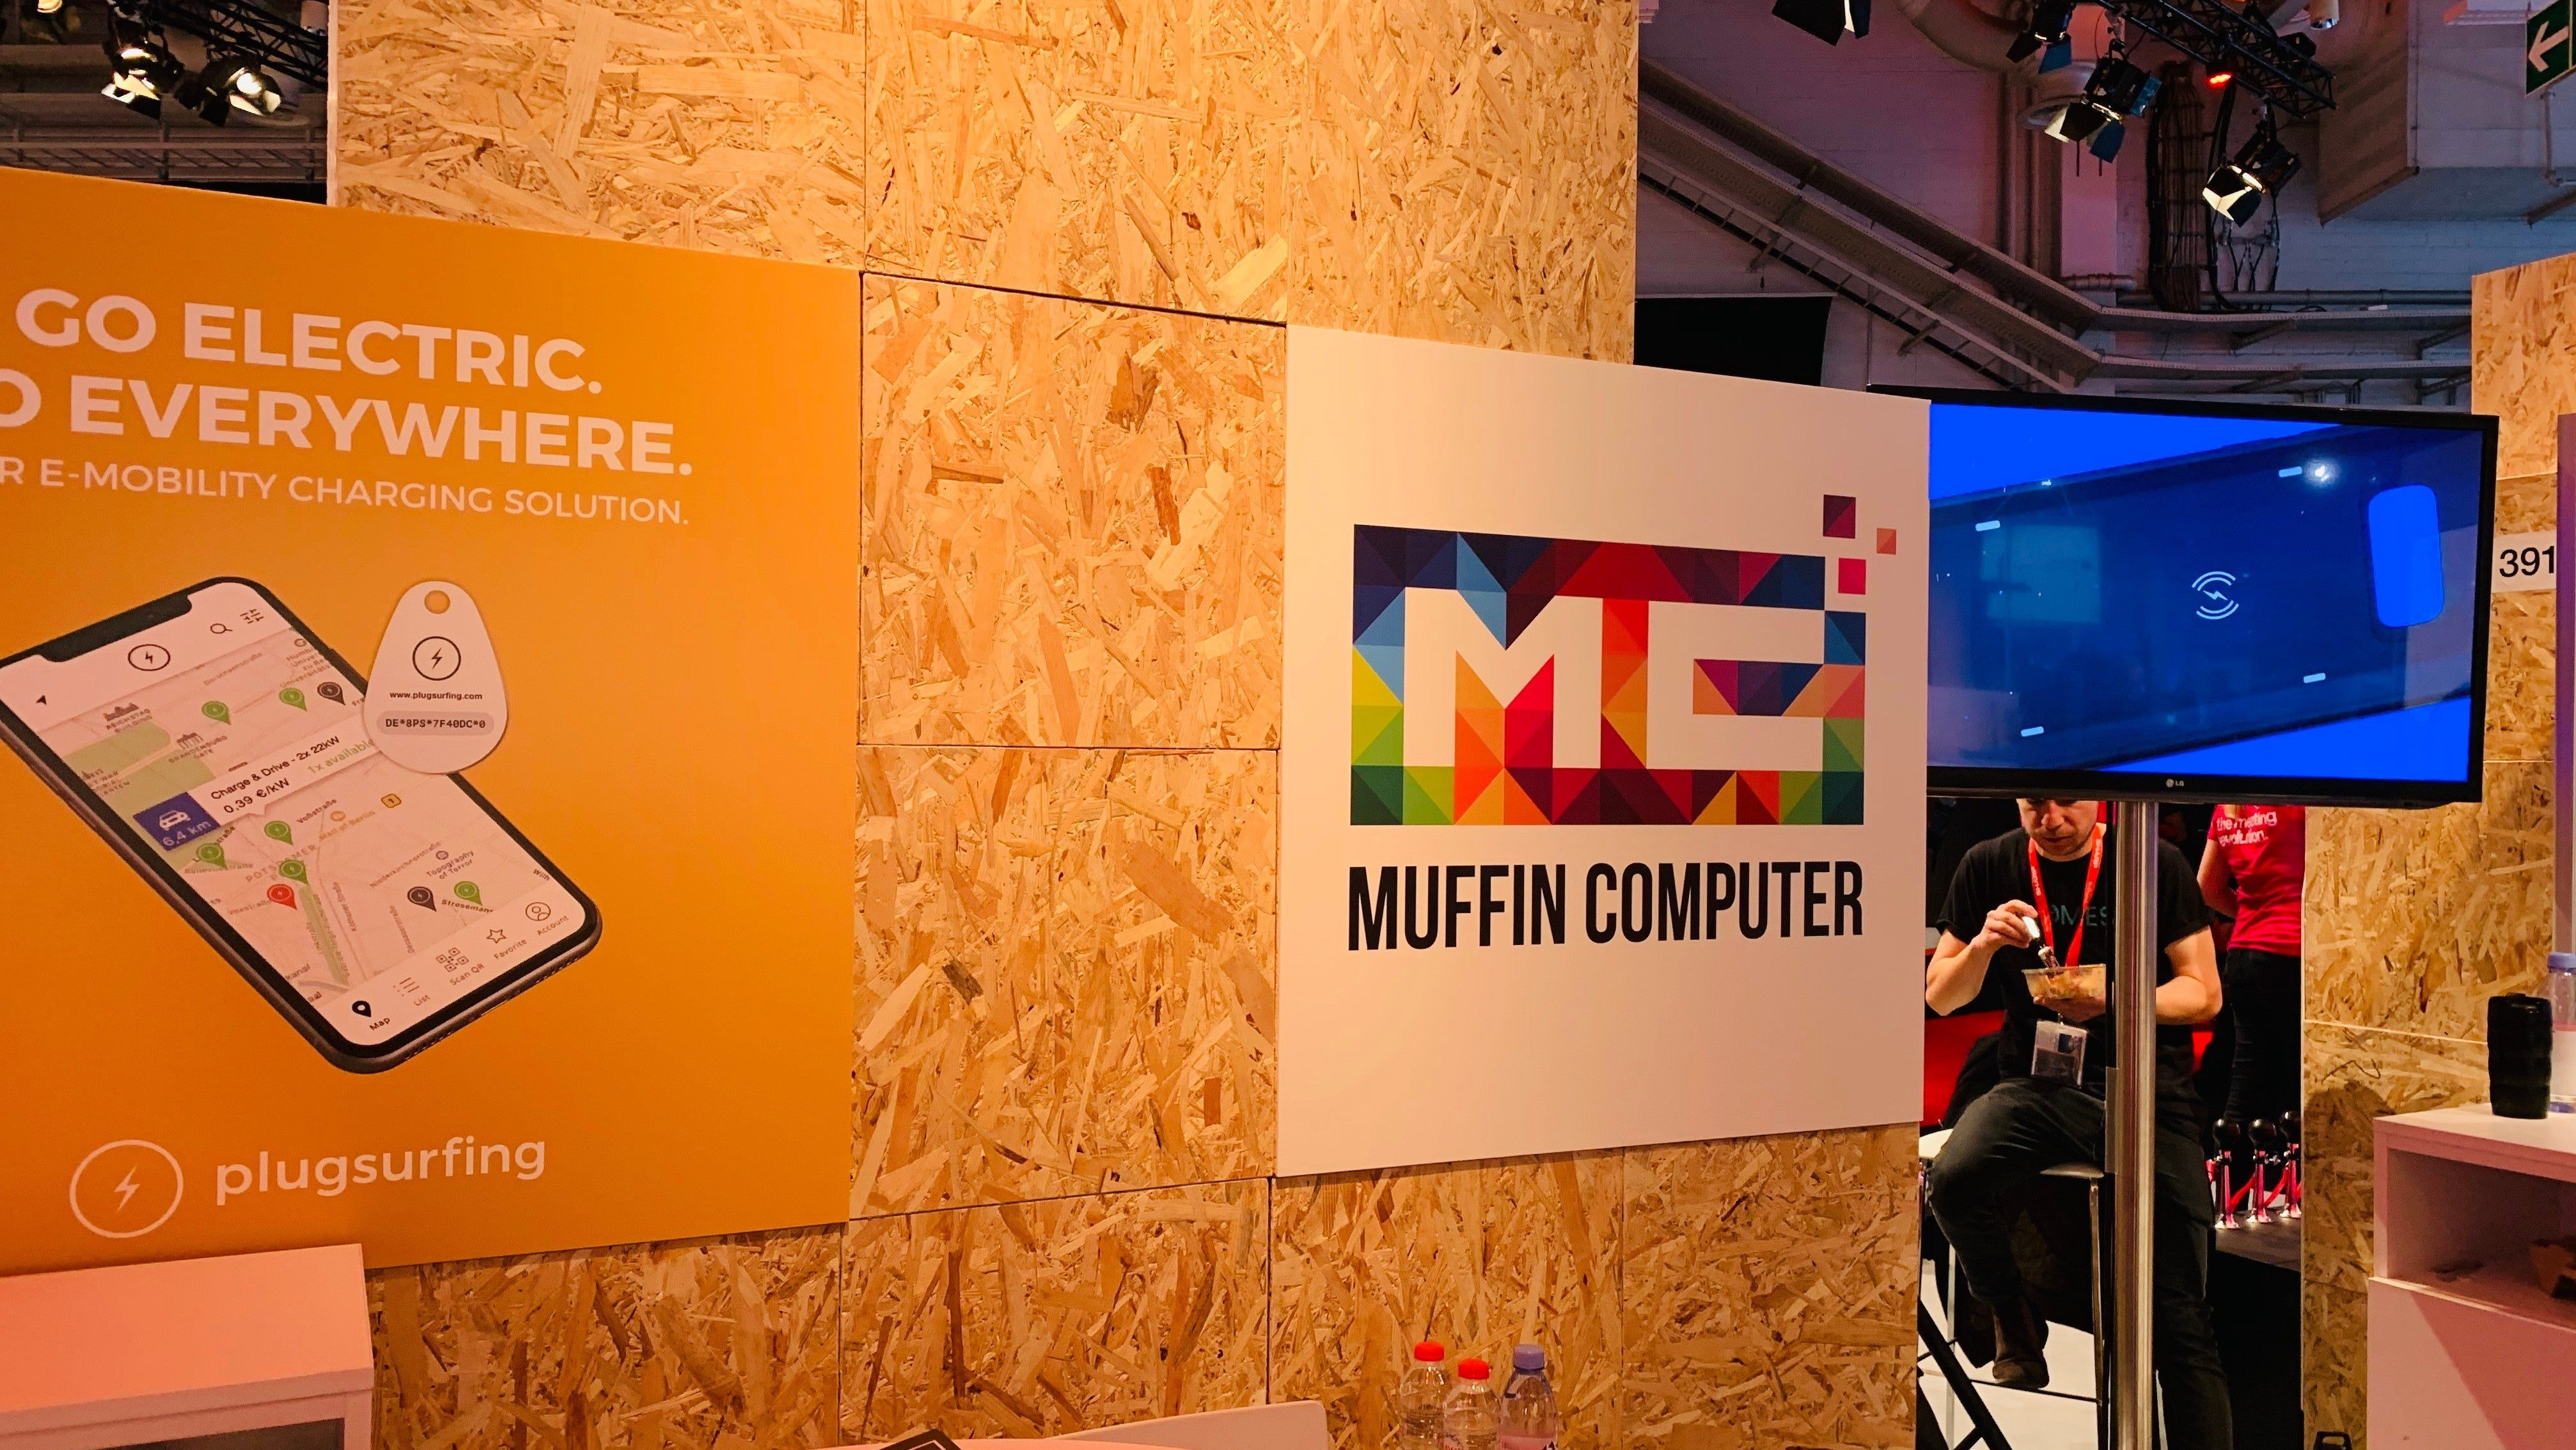 Russian Startup 'Muffin Computer' Wants To Keep Your Smartphone Cosy On Cold Days